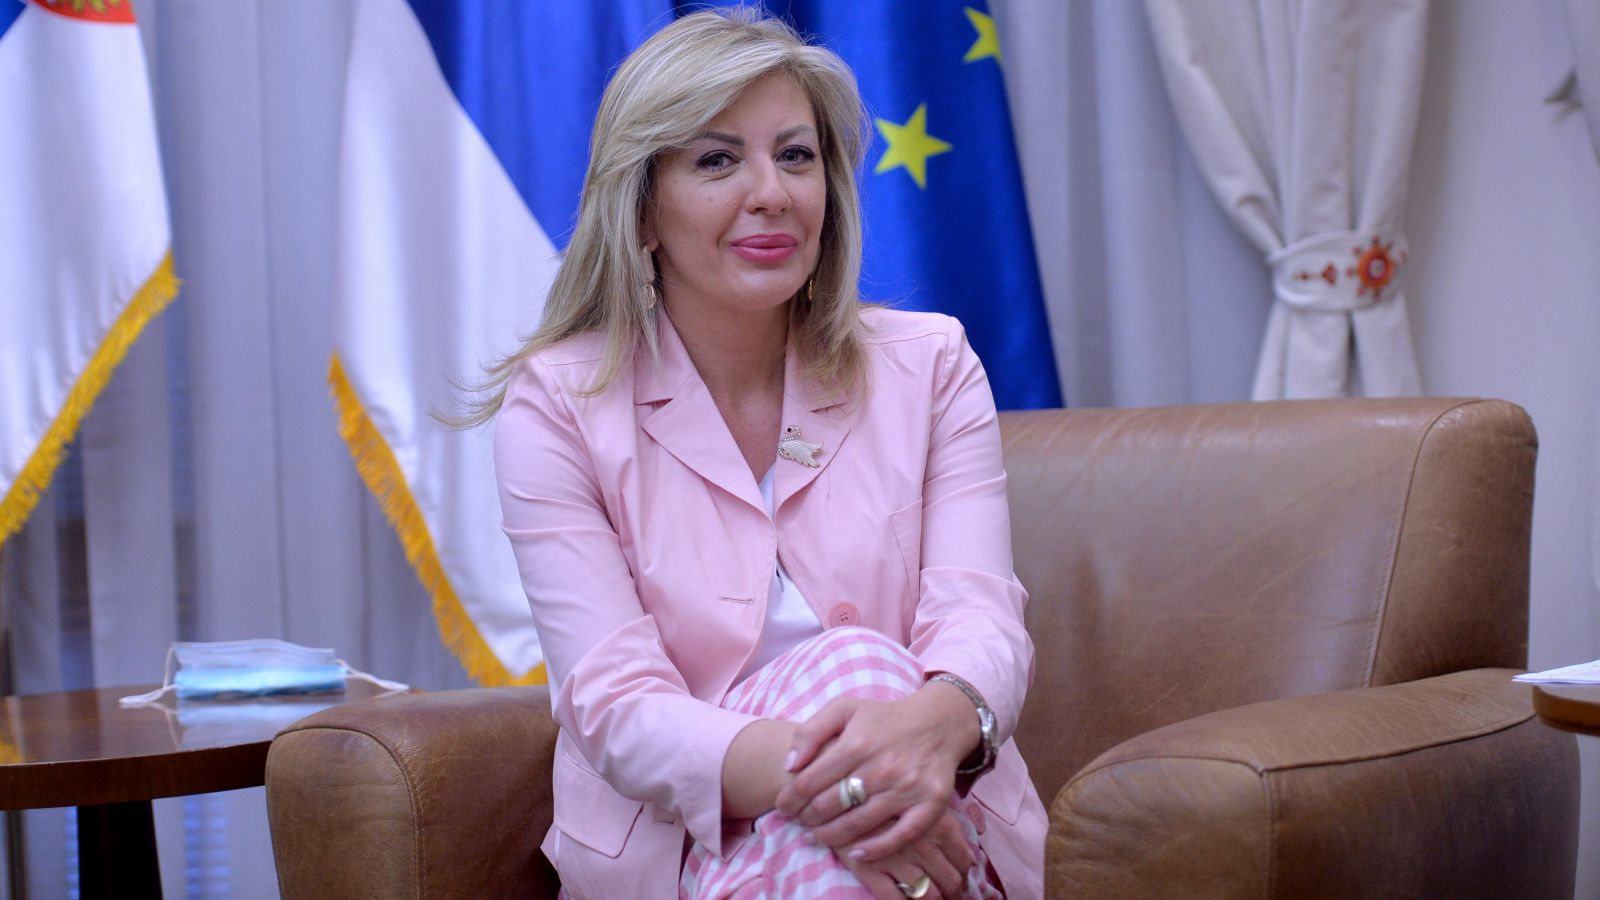 J. Joksimović: Cross-border cooperation improves the relations between our two peoples